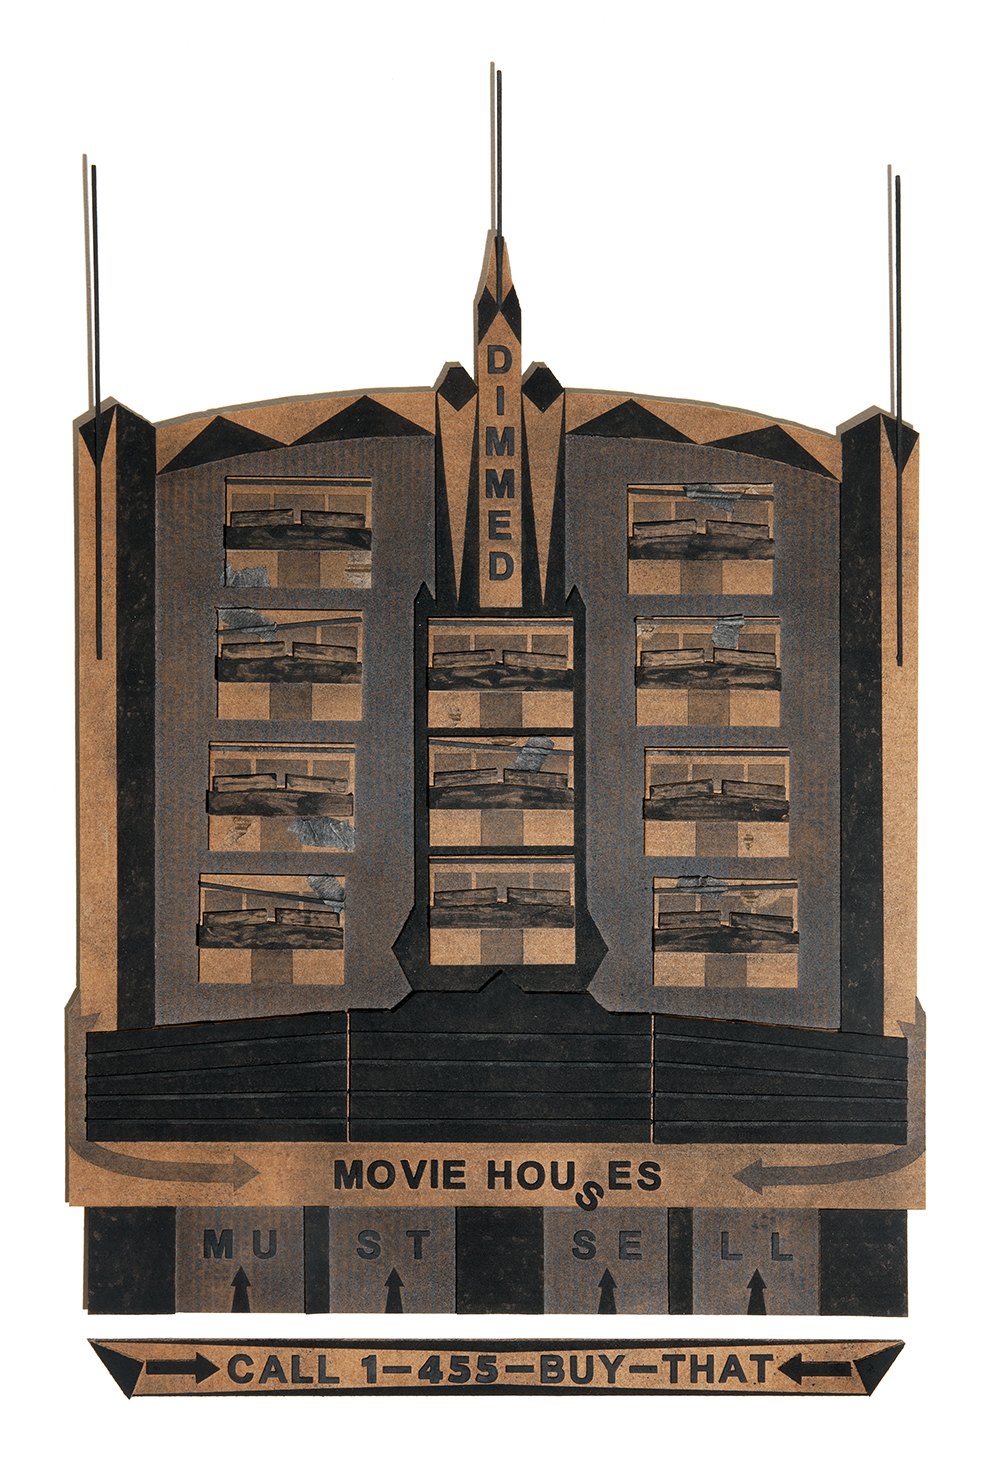 : Black Marquee No. 1: Movie Houses / charcoal, tape, wood, cardboard / 34 3/4 x 23 1/2 x 1 inches / 2020